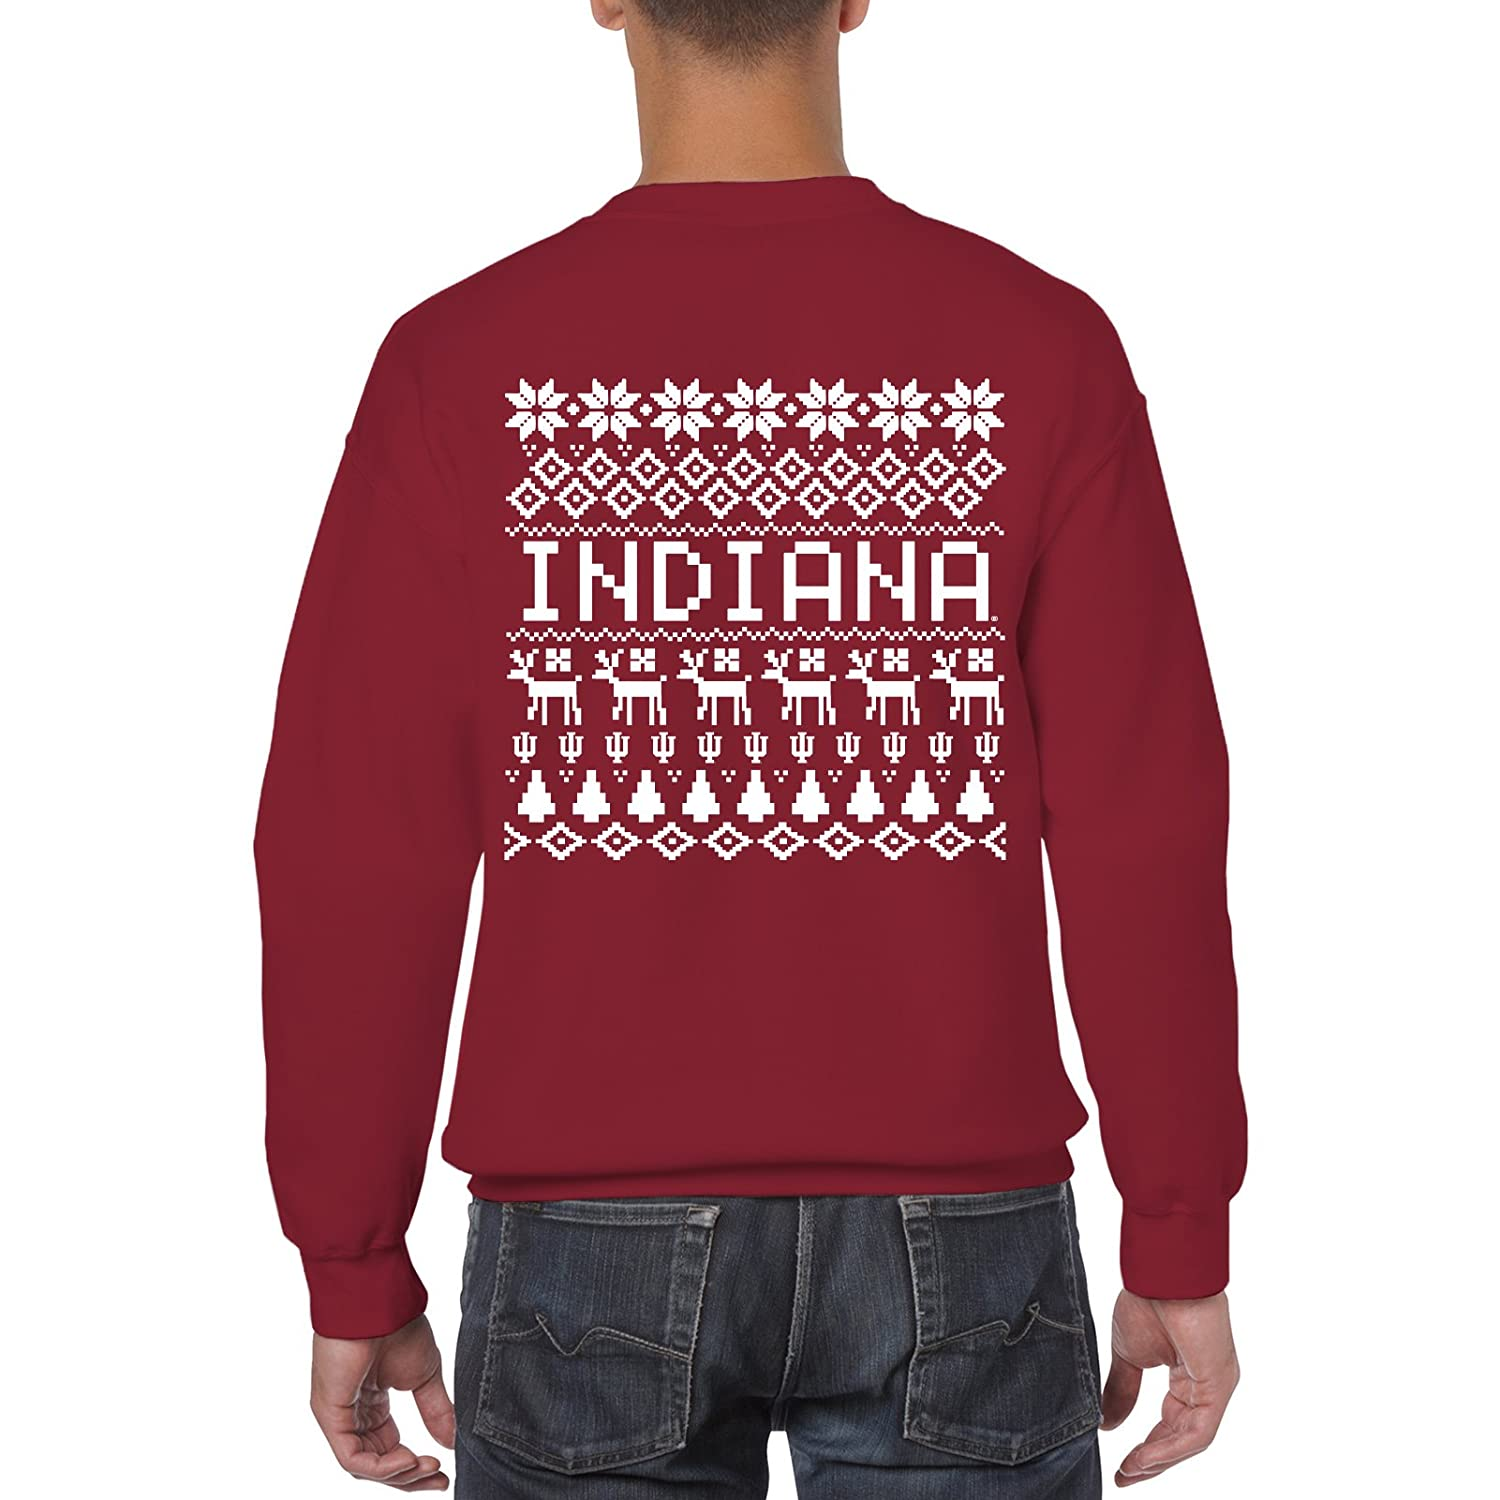 NCAA Holiday Ugly Sweater, Team Color Crewneck, College, University